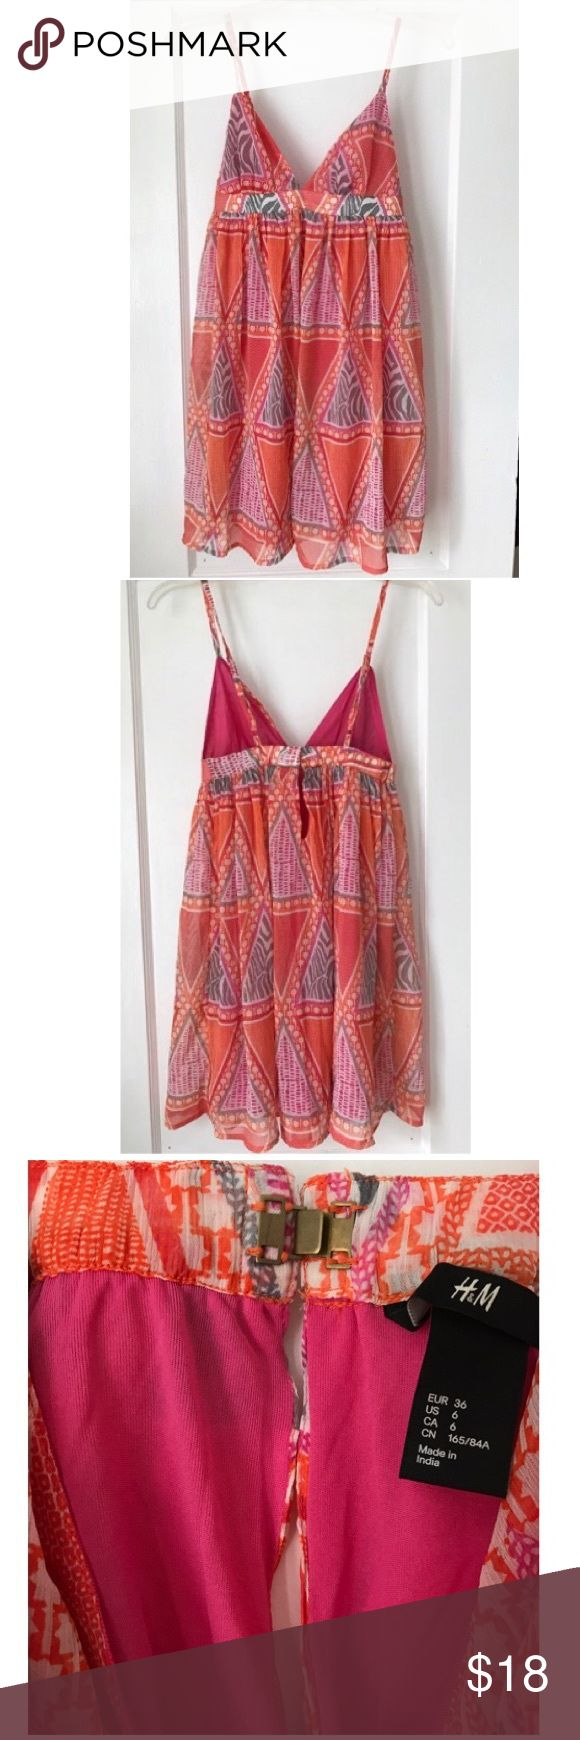 Vacation Dress Pink and orange H&M spaghetti strap dress- perfect to wear on any tropical vacation! Dress has adjustable straps, and hook and closure with short slit in the back (see photo 3.) NWOT because there's not a lot of boob coverage (covers about what a triangle bathing suit top does.) H&M Dresses Backless